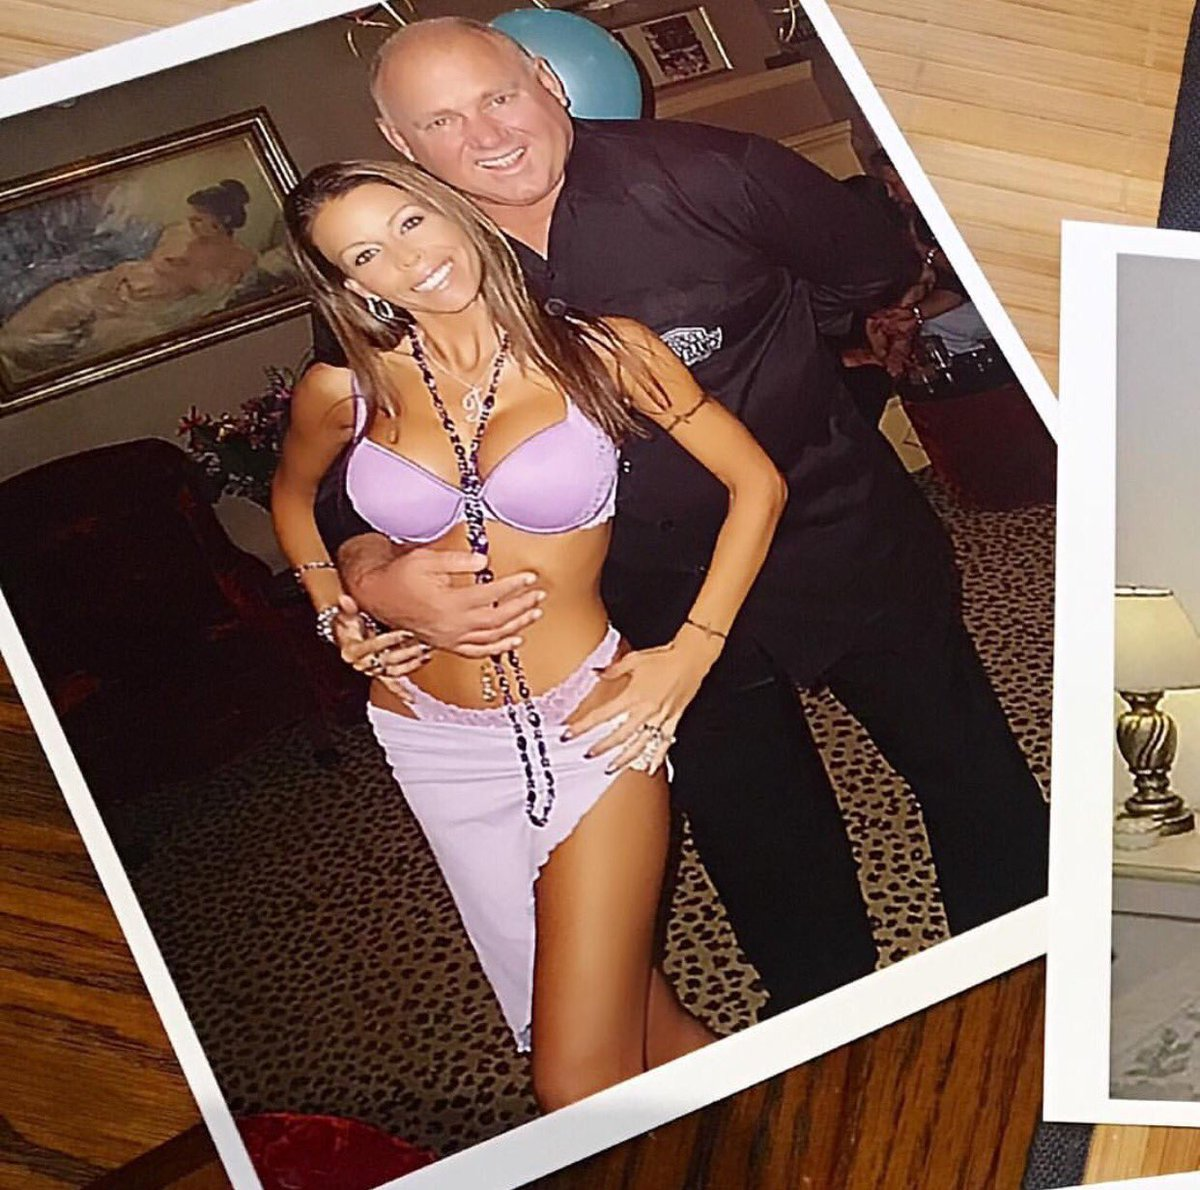 Tabitha Stevens On Twitter So Sad To Hear The News Of My Friend Ripdennishof S Passing Such A Nice Guy With A Heart Of Gold He Had Me Appear On Cat House Jump to navigation jump to search. tabitha stevens on twitter so sad to